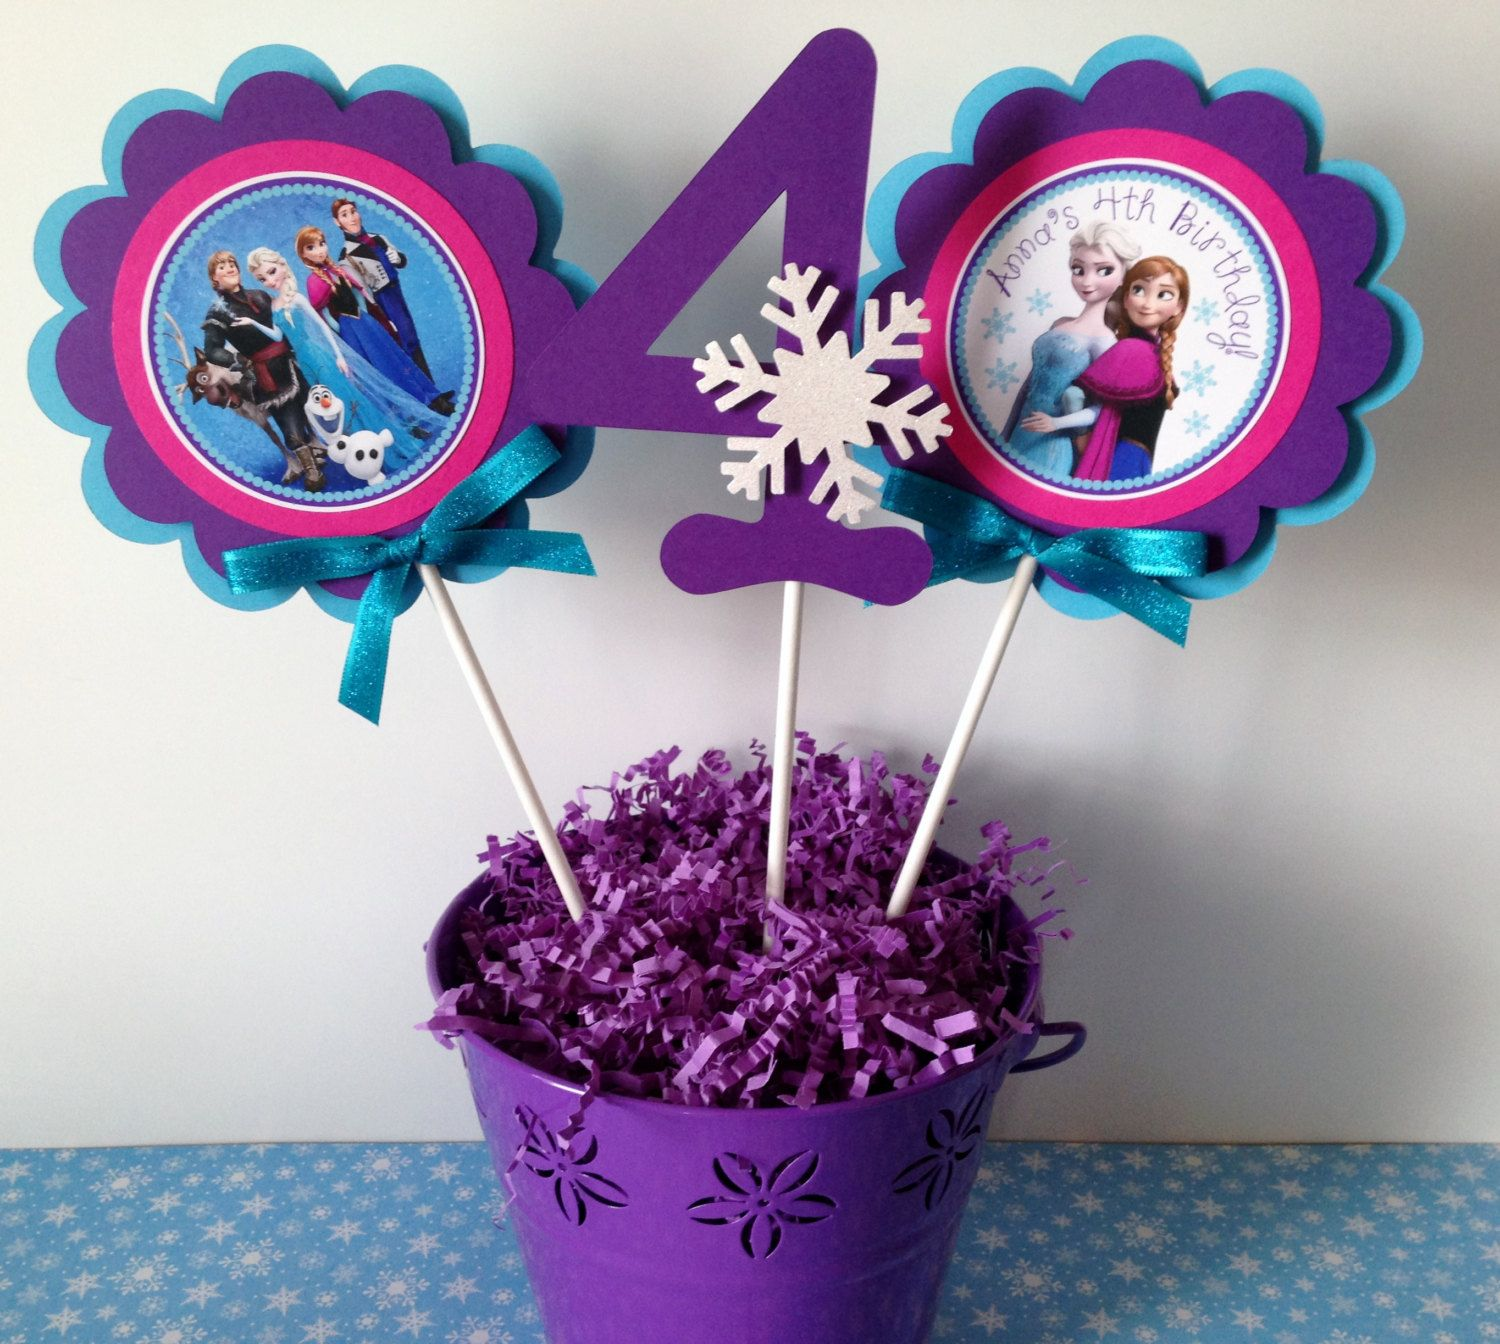 3 Frozen Birthday Party Centerpiece Sticks By Sweetheartparty 10 00